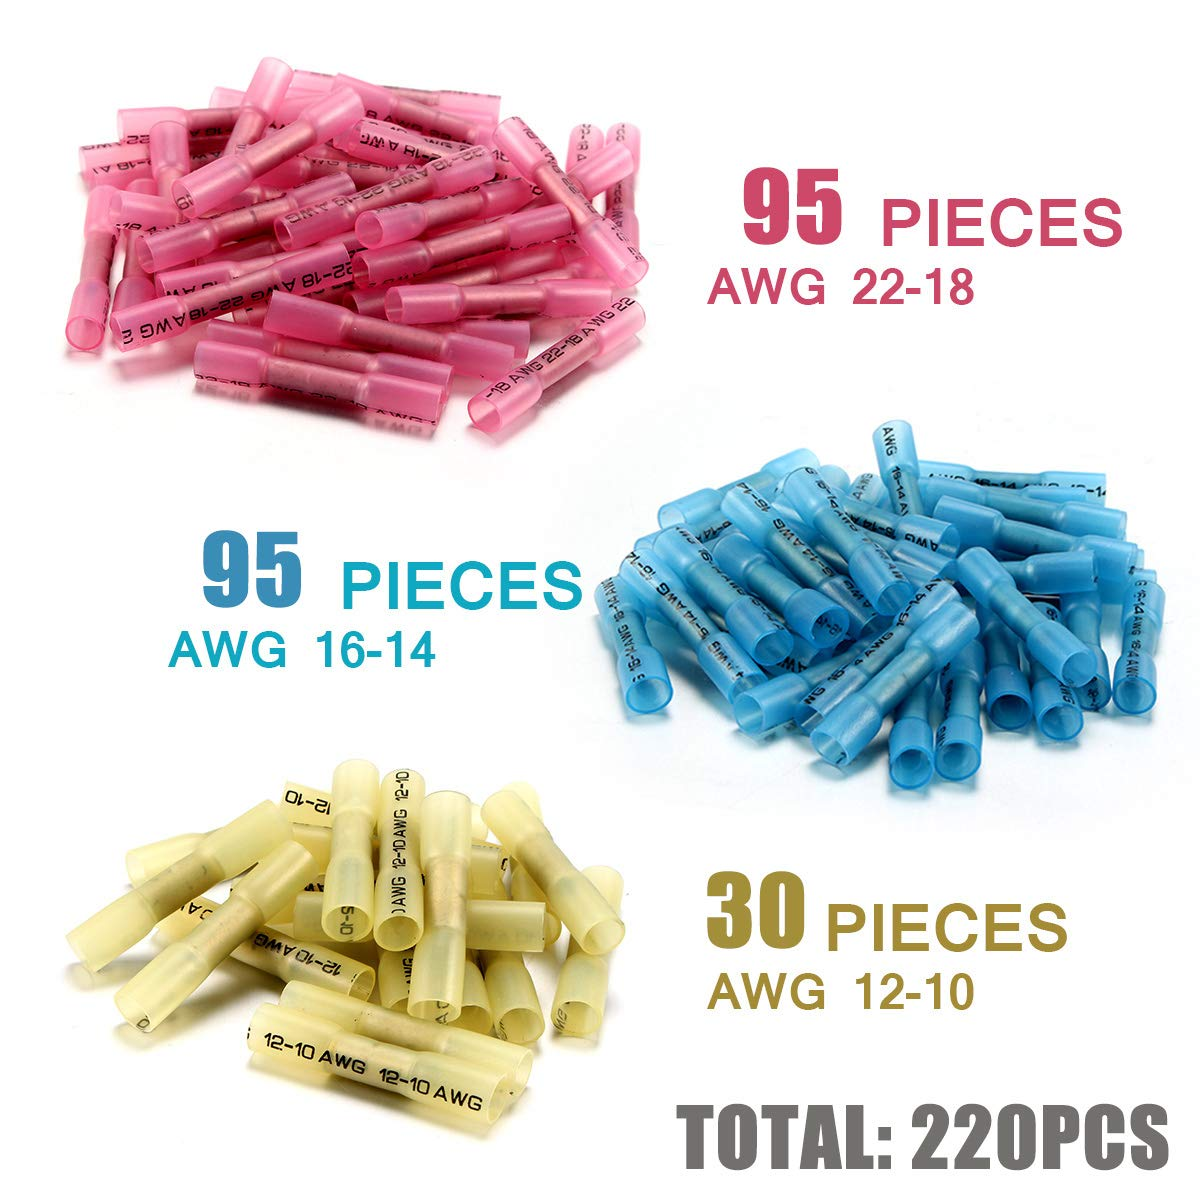 Waterproof Wire Connectors Terminals Insulated Marine Automotive Copper Connector Kit 220PCS Heat Shrink Butt Connectors Sopoby Electrical Connectors 3 Colors//3 Sizes